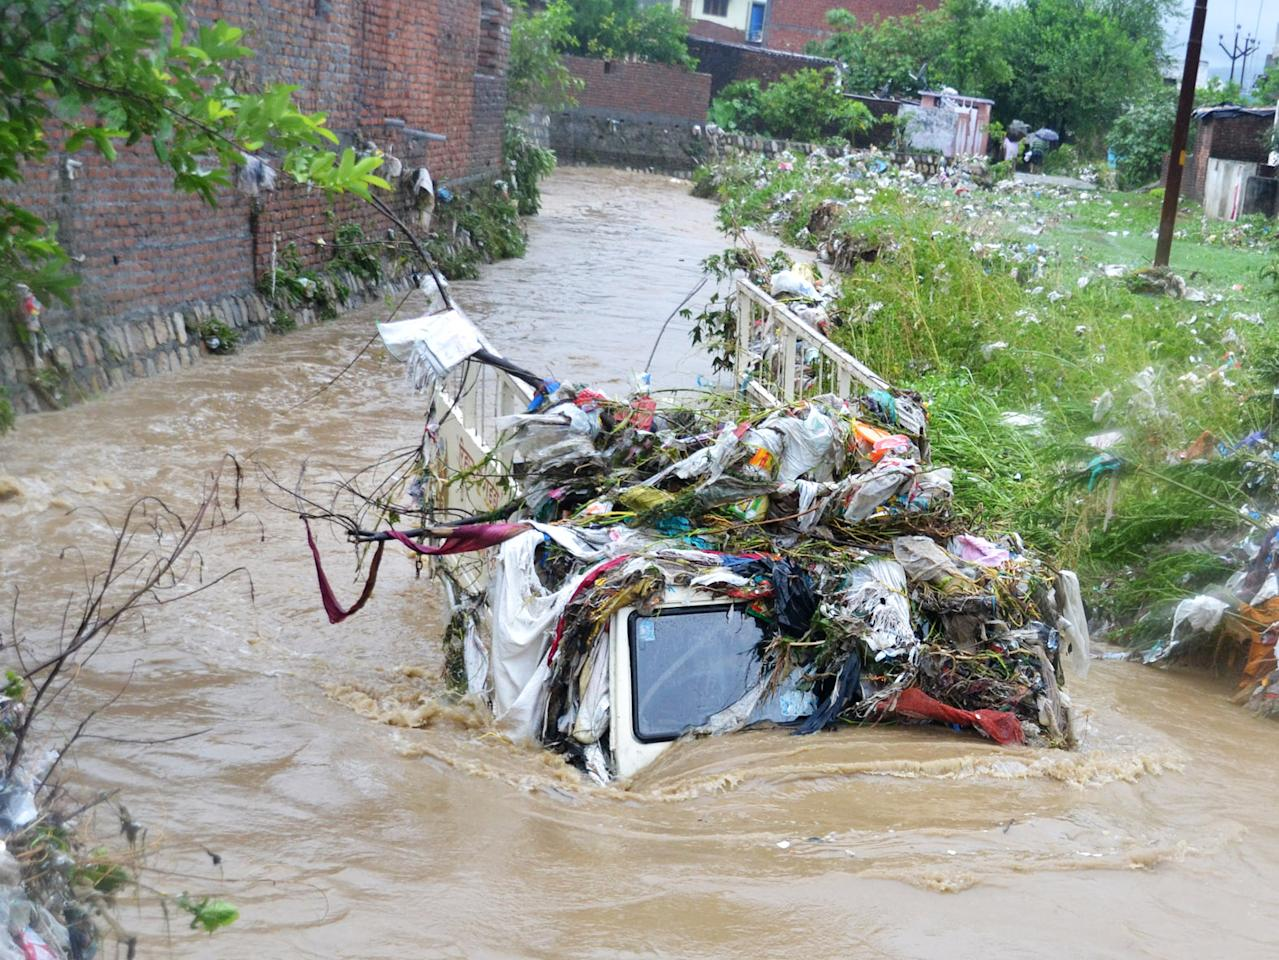 Trash covers a truck submerged in flood waters from heavy monsoon rains in Dehradun in the Indian state of Uttrakhand on June 17, 2013. Heavy rains lashed parts of north India Monday, resulting in the deaths of at least 18 people, as the annual monsoon covered the country nearly two weeks ahead of schedule, officials said. More than a dozen people lost their lives due to record downpours in Uttarakhand state, situated in the foothills of the Himalayas, a local official said. AFP PHOTO/ STR        (Photo credit should read STRDEL/AFP/Getty Images)